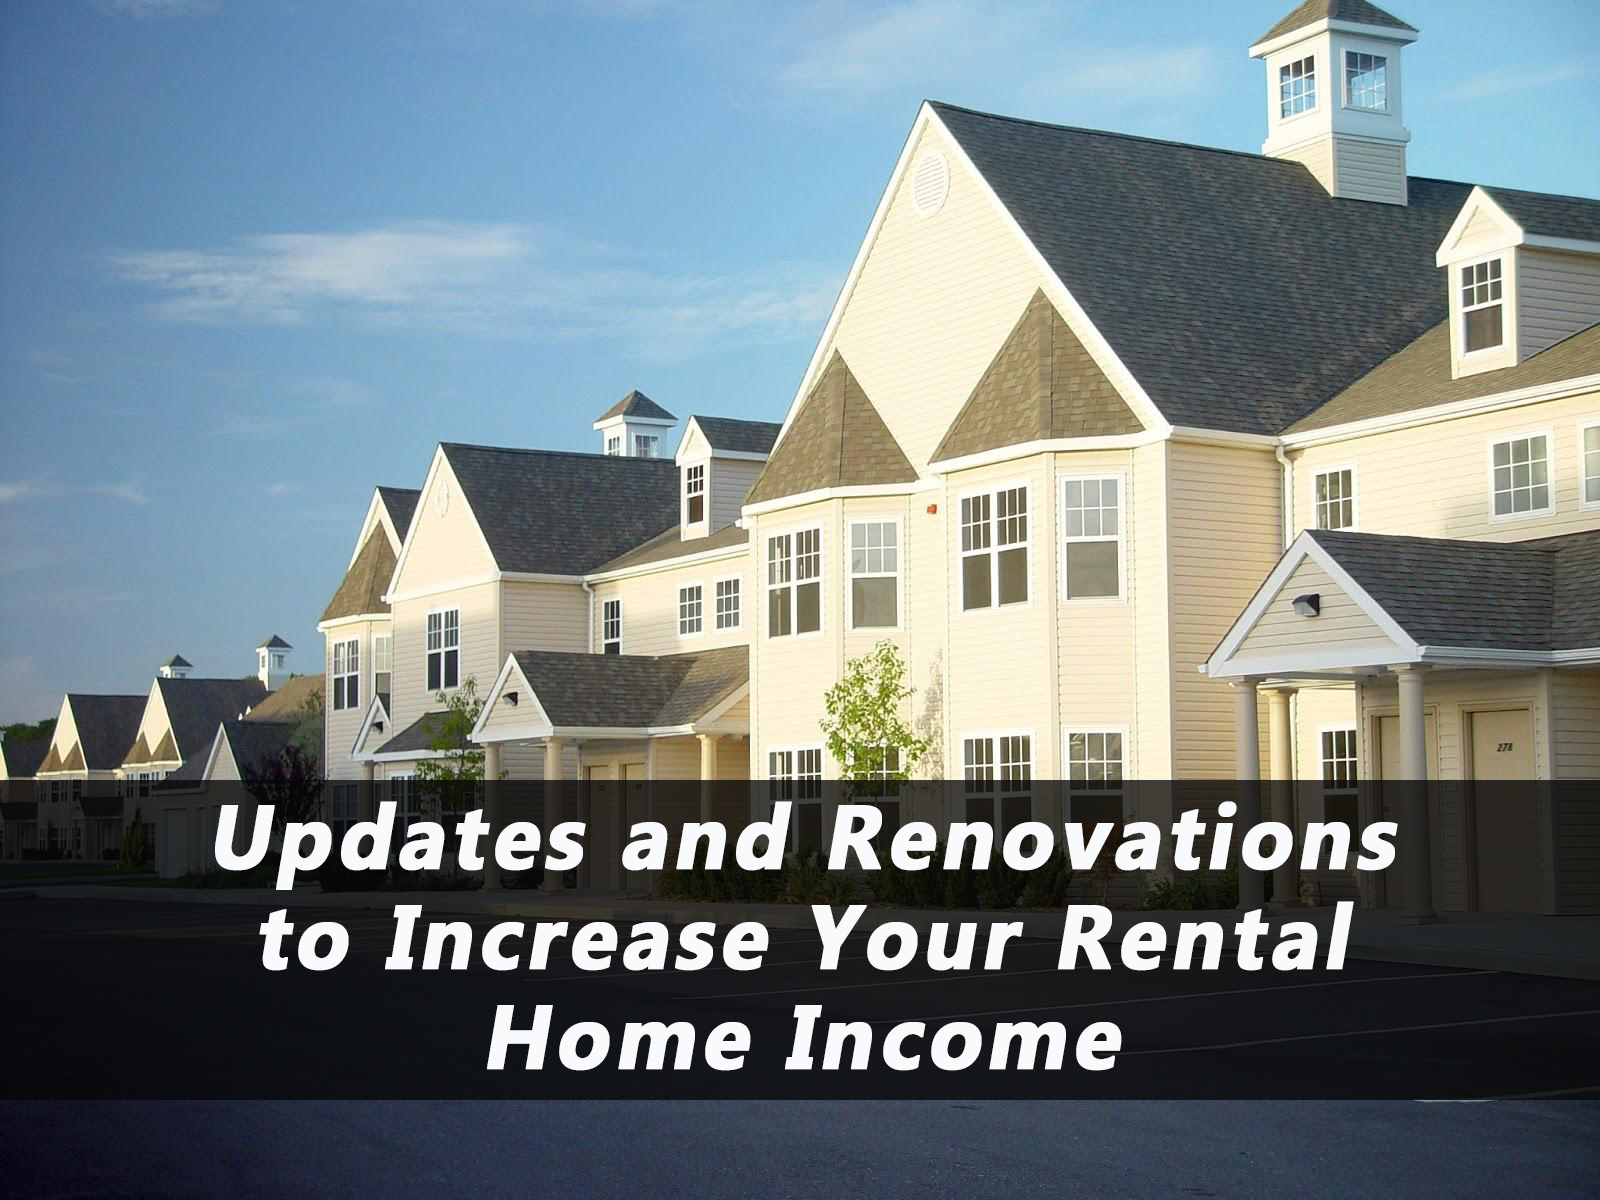 Updates to Increase Rental Home Income